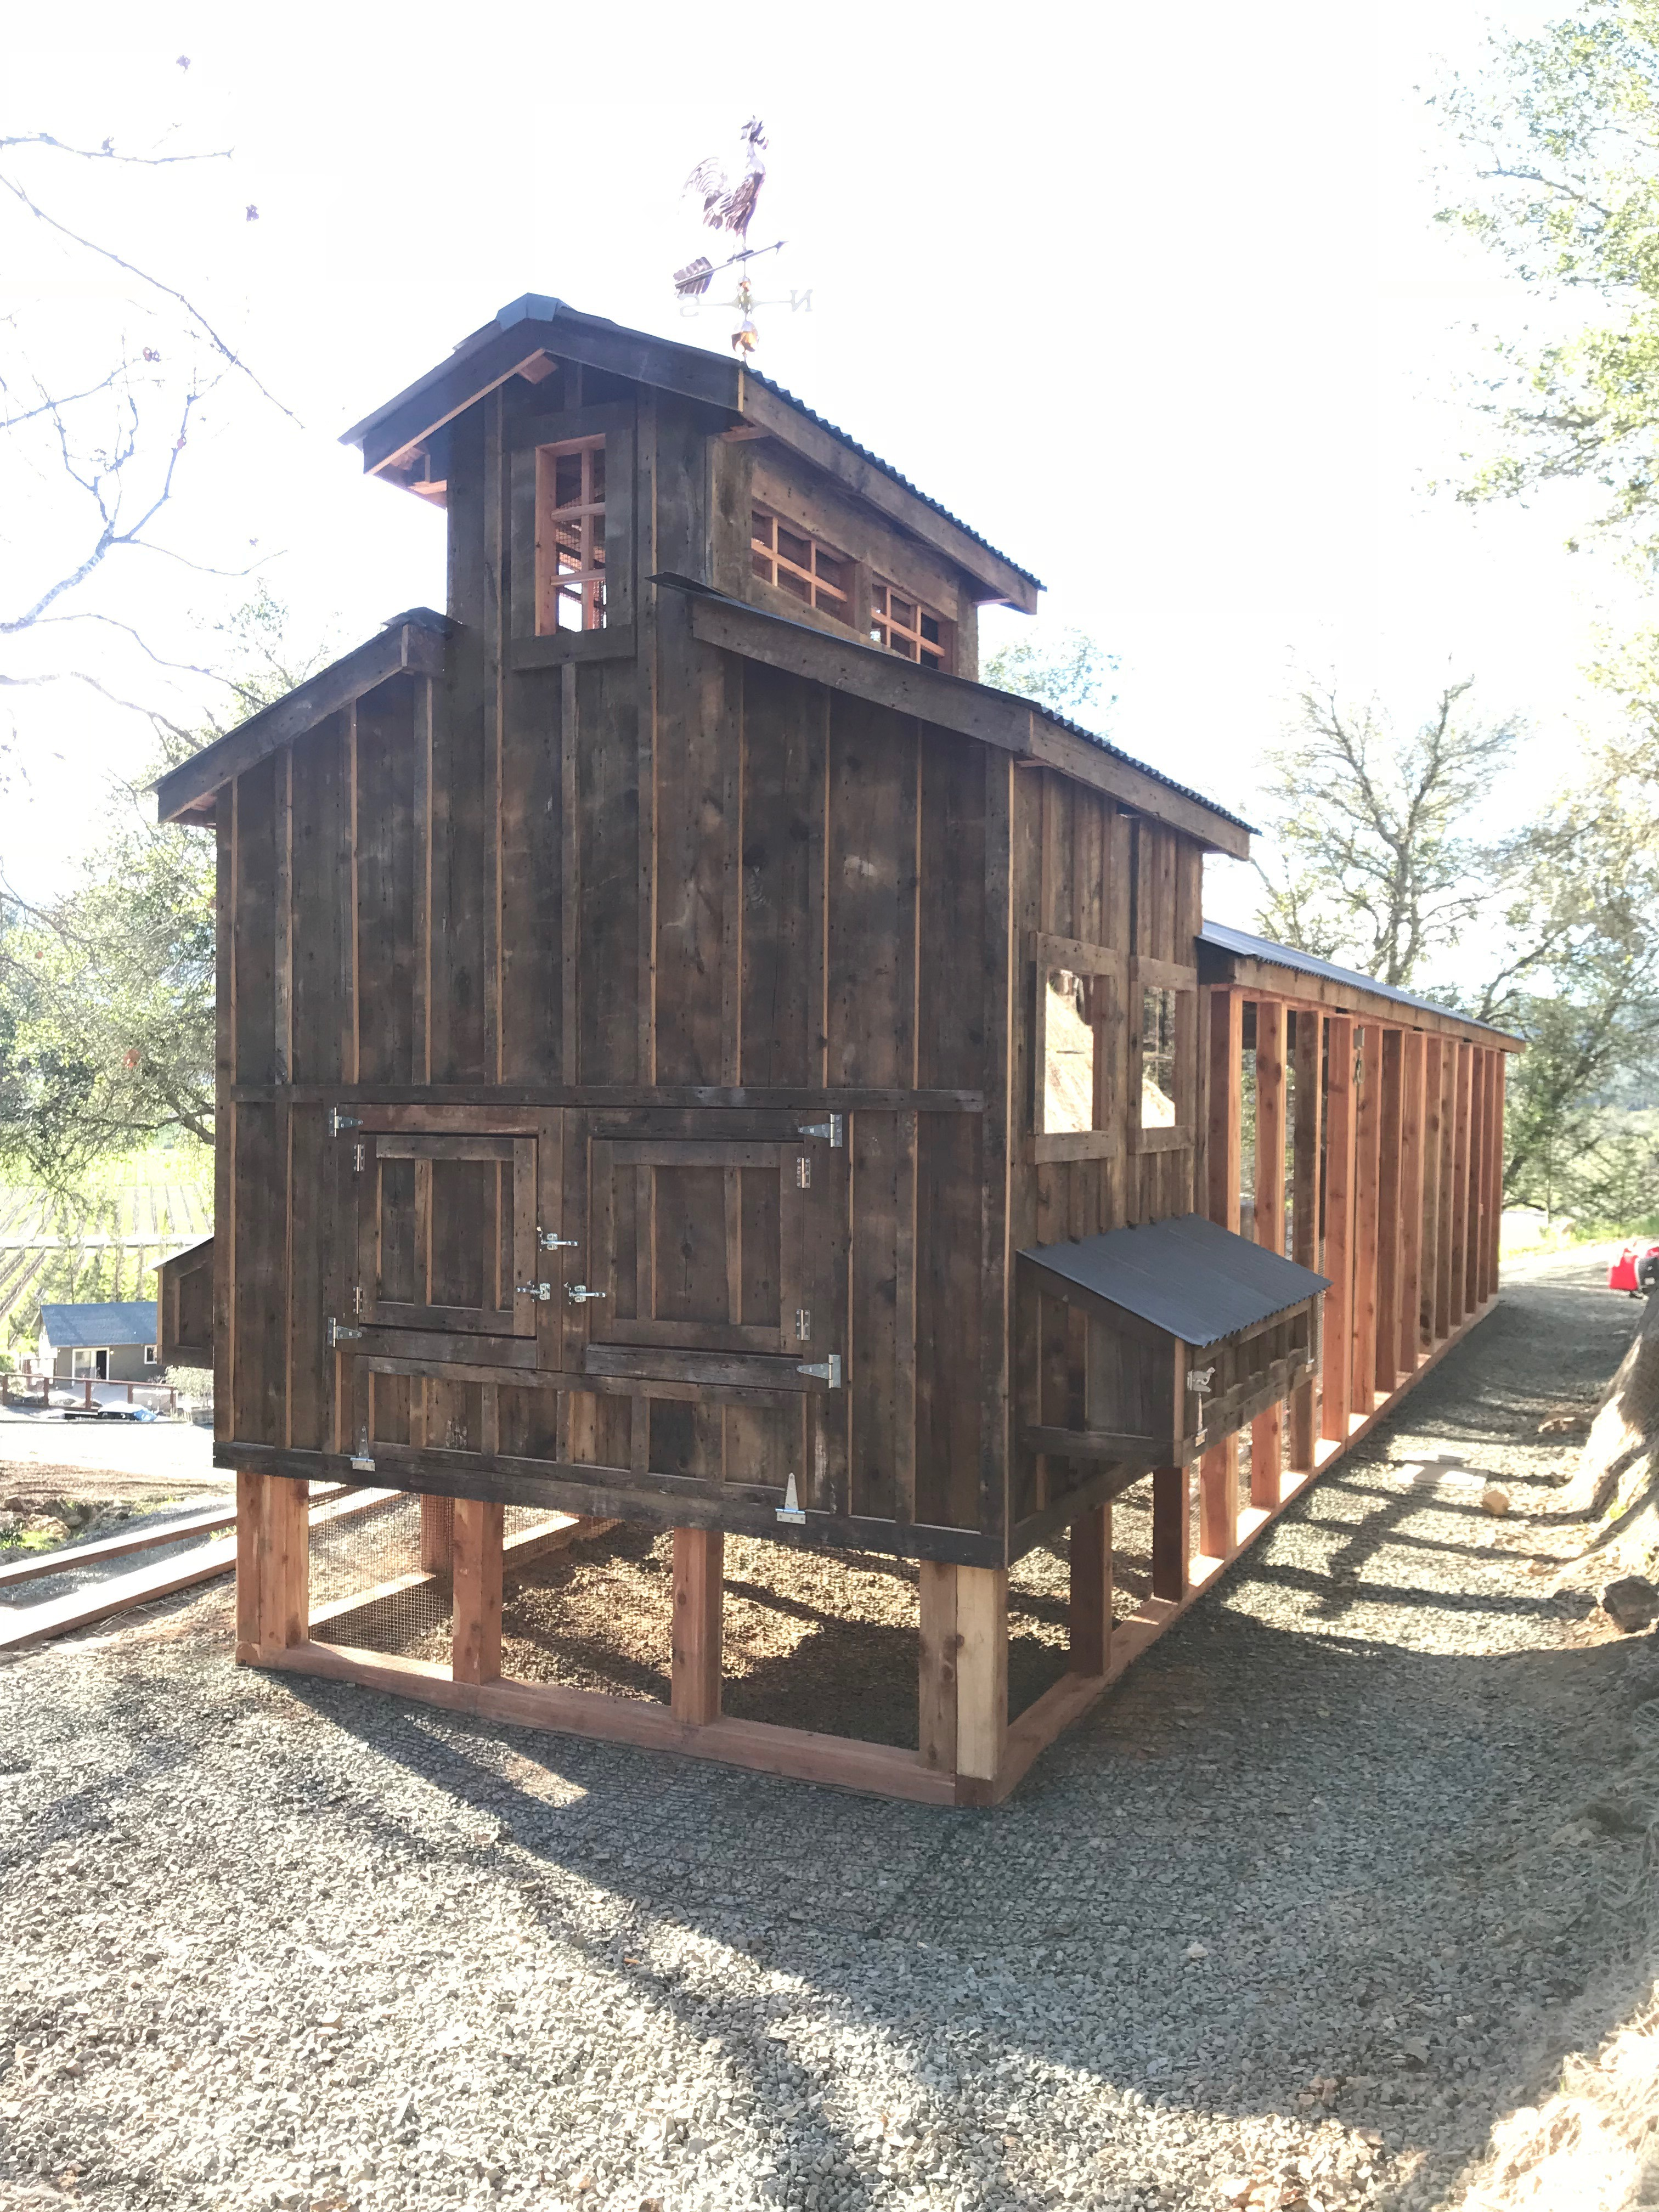 Red cedar reclaimed barn wood 40-foot coop for Davis Estates Winery in Calistoga, CA